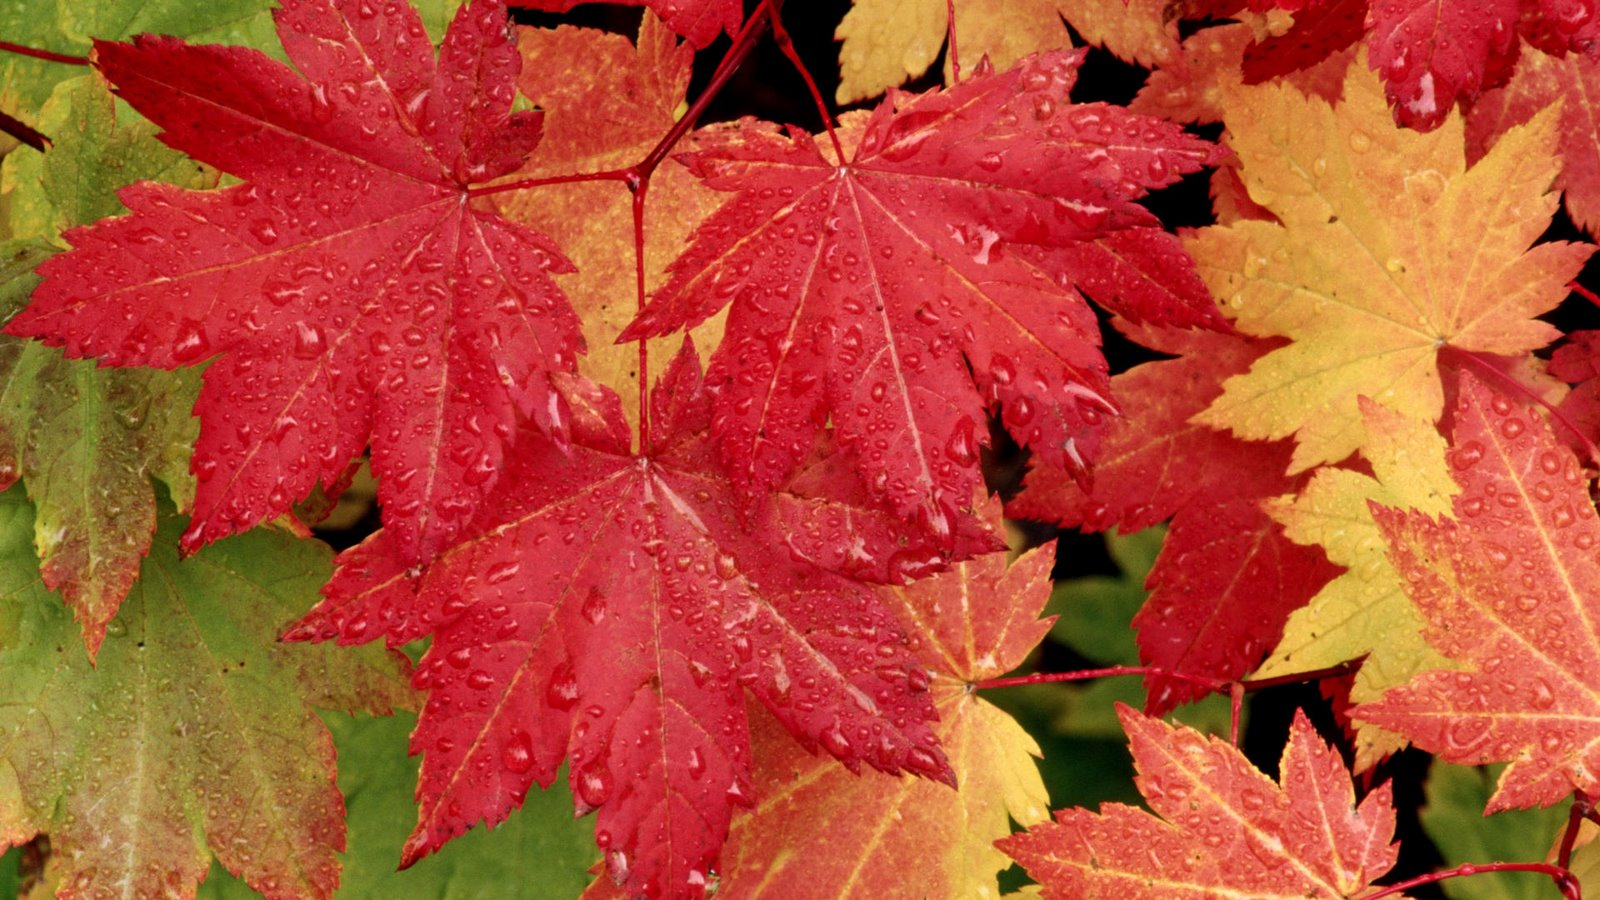 http://3.bp.blogspot.com/_2UbsSBz9ckE/TIFOl5tdt6I/AAAAAAAABWA/BnzAML5hVXc/s1600/Vine%20Maple%20Leaves%20in%20Autumn.jpg